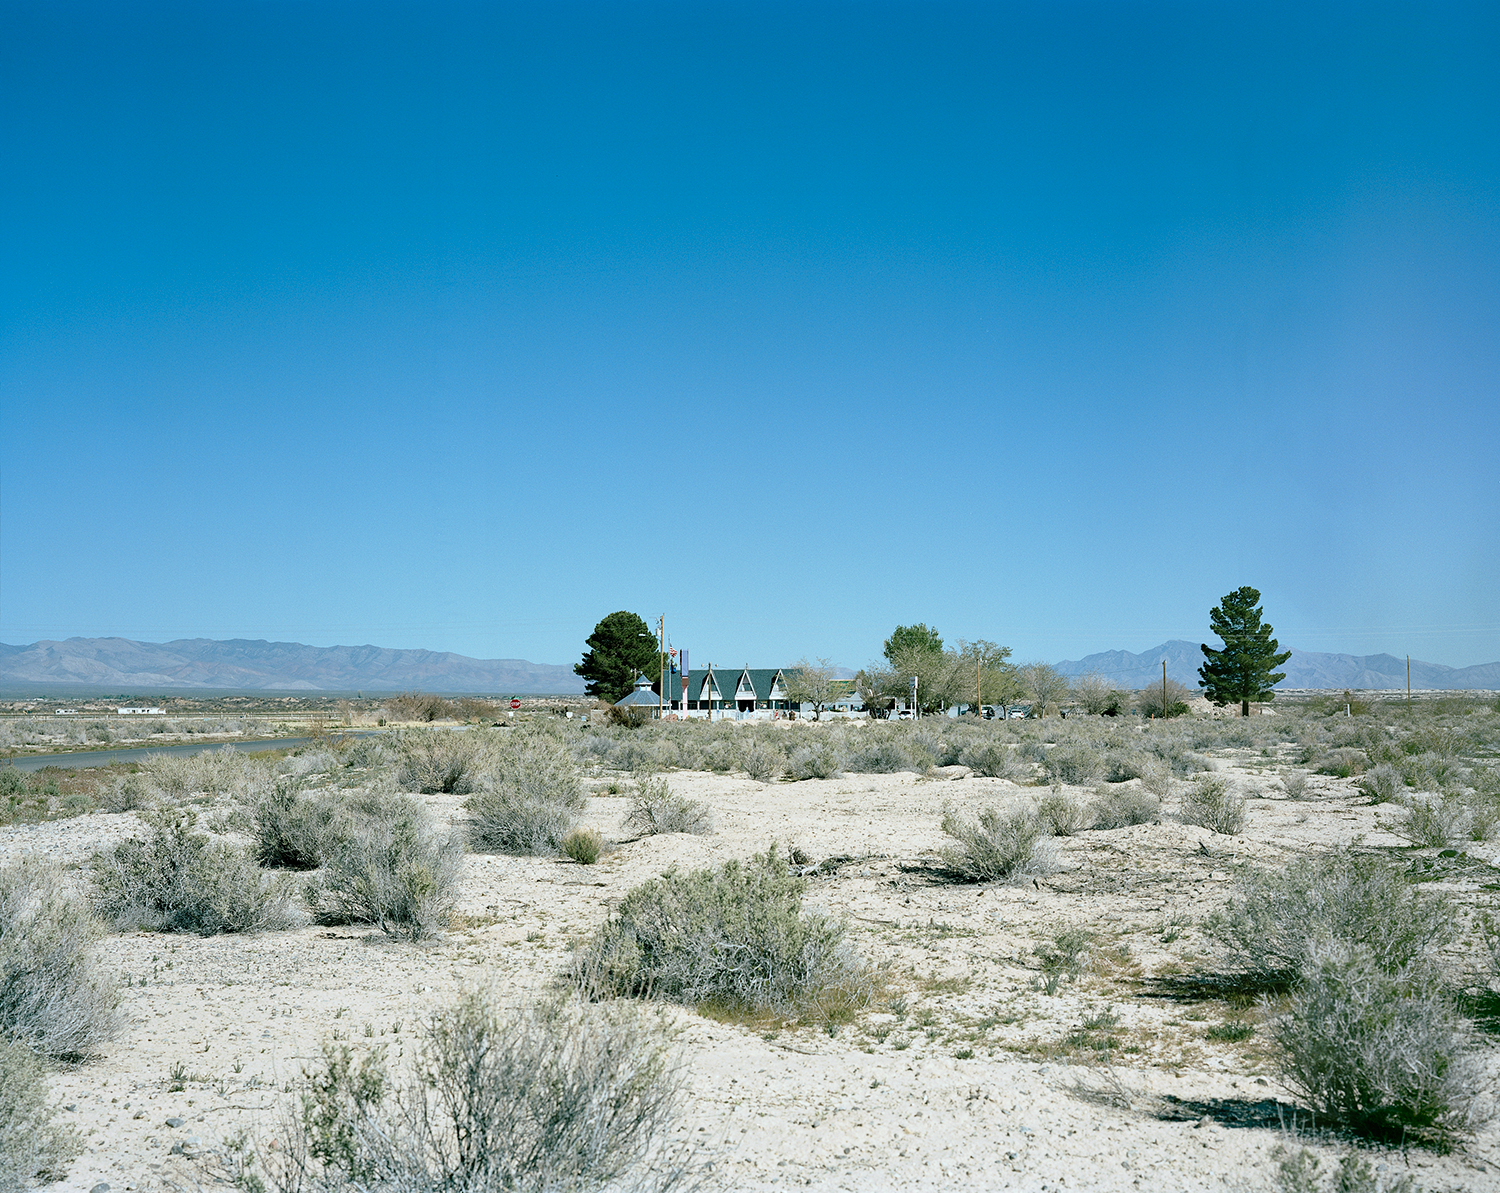 The Chicken Ranch Brothel, Homestead Rd, Pahrump, Nevada, USA.